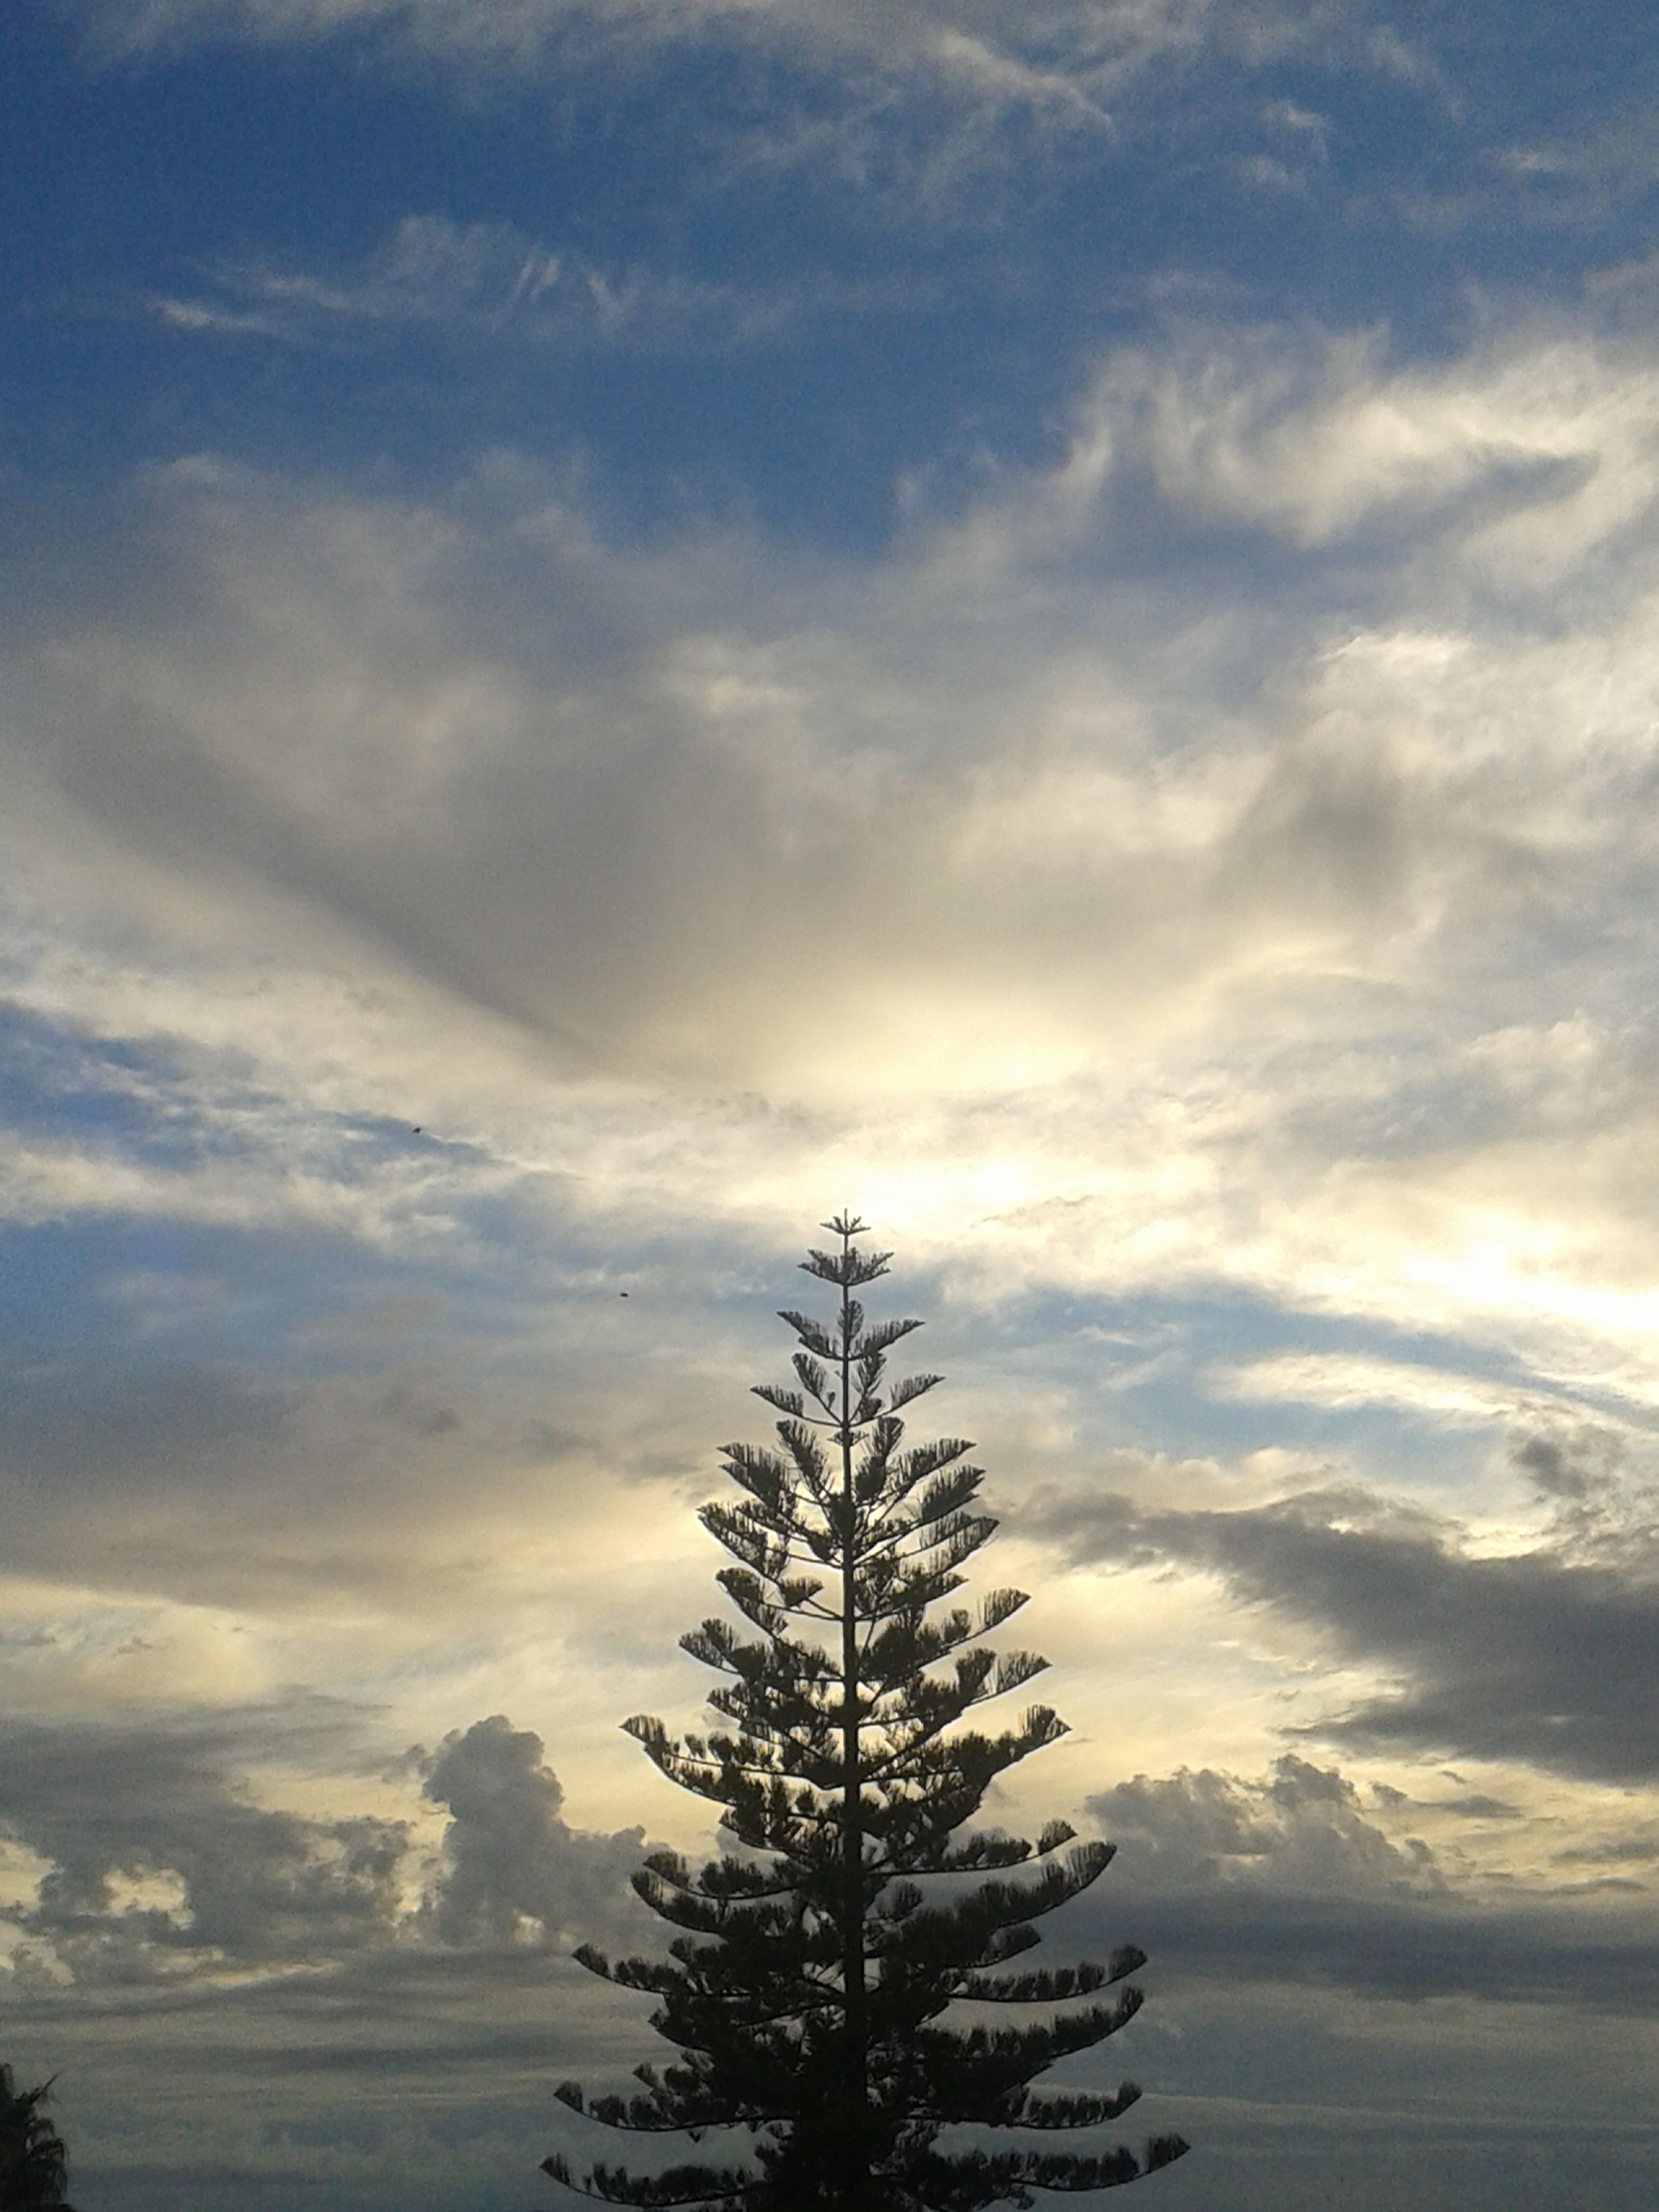 sky, cloud - sky, tranquility, tranquil scene, scenics, beauty in nature, cloudy, nature, cloud, low angle view, tree, idyllic, outdoors, silhouette, no people, day, weather, growth, cloudscape, blue